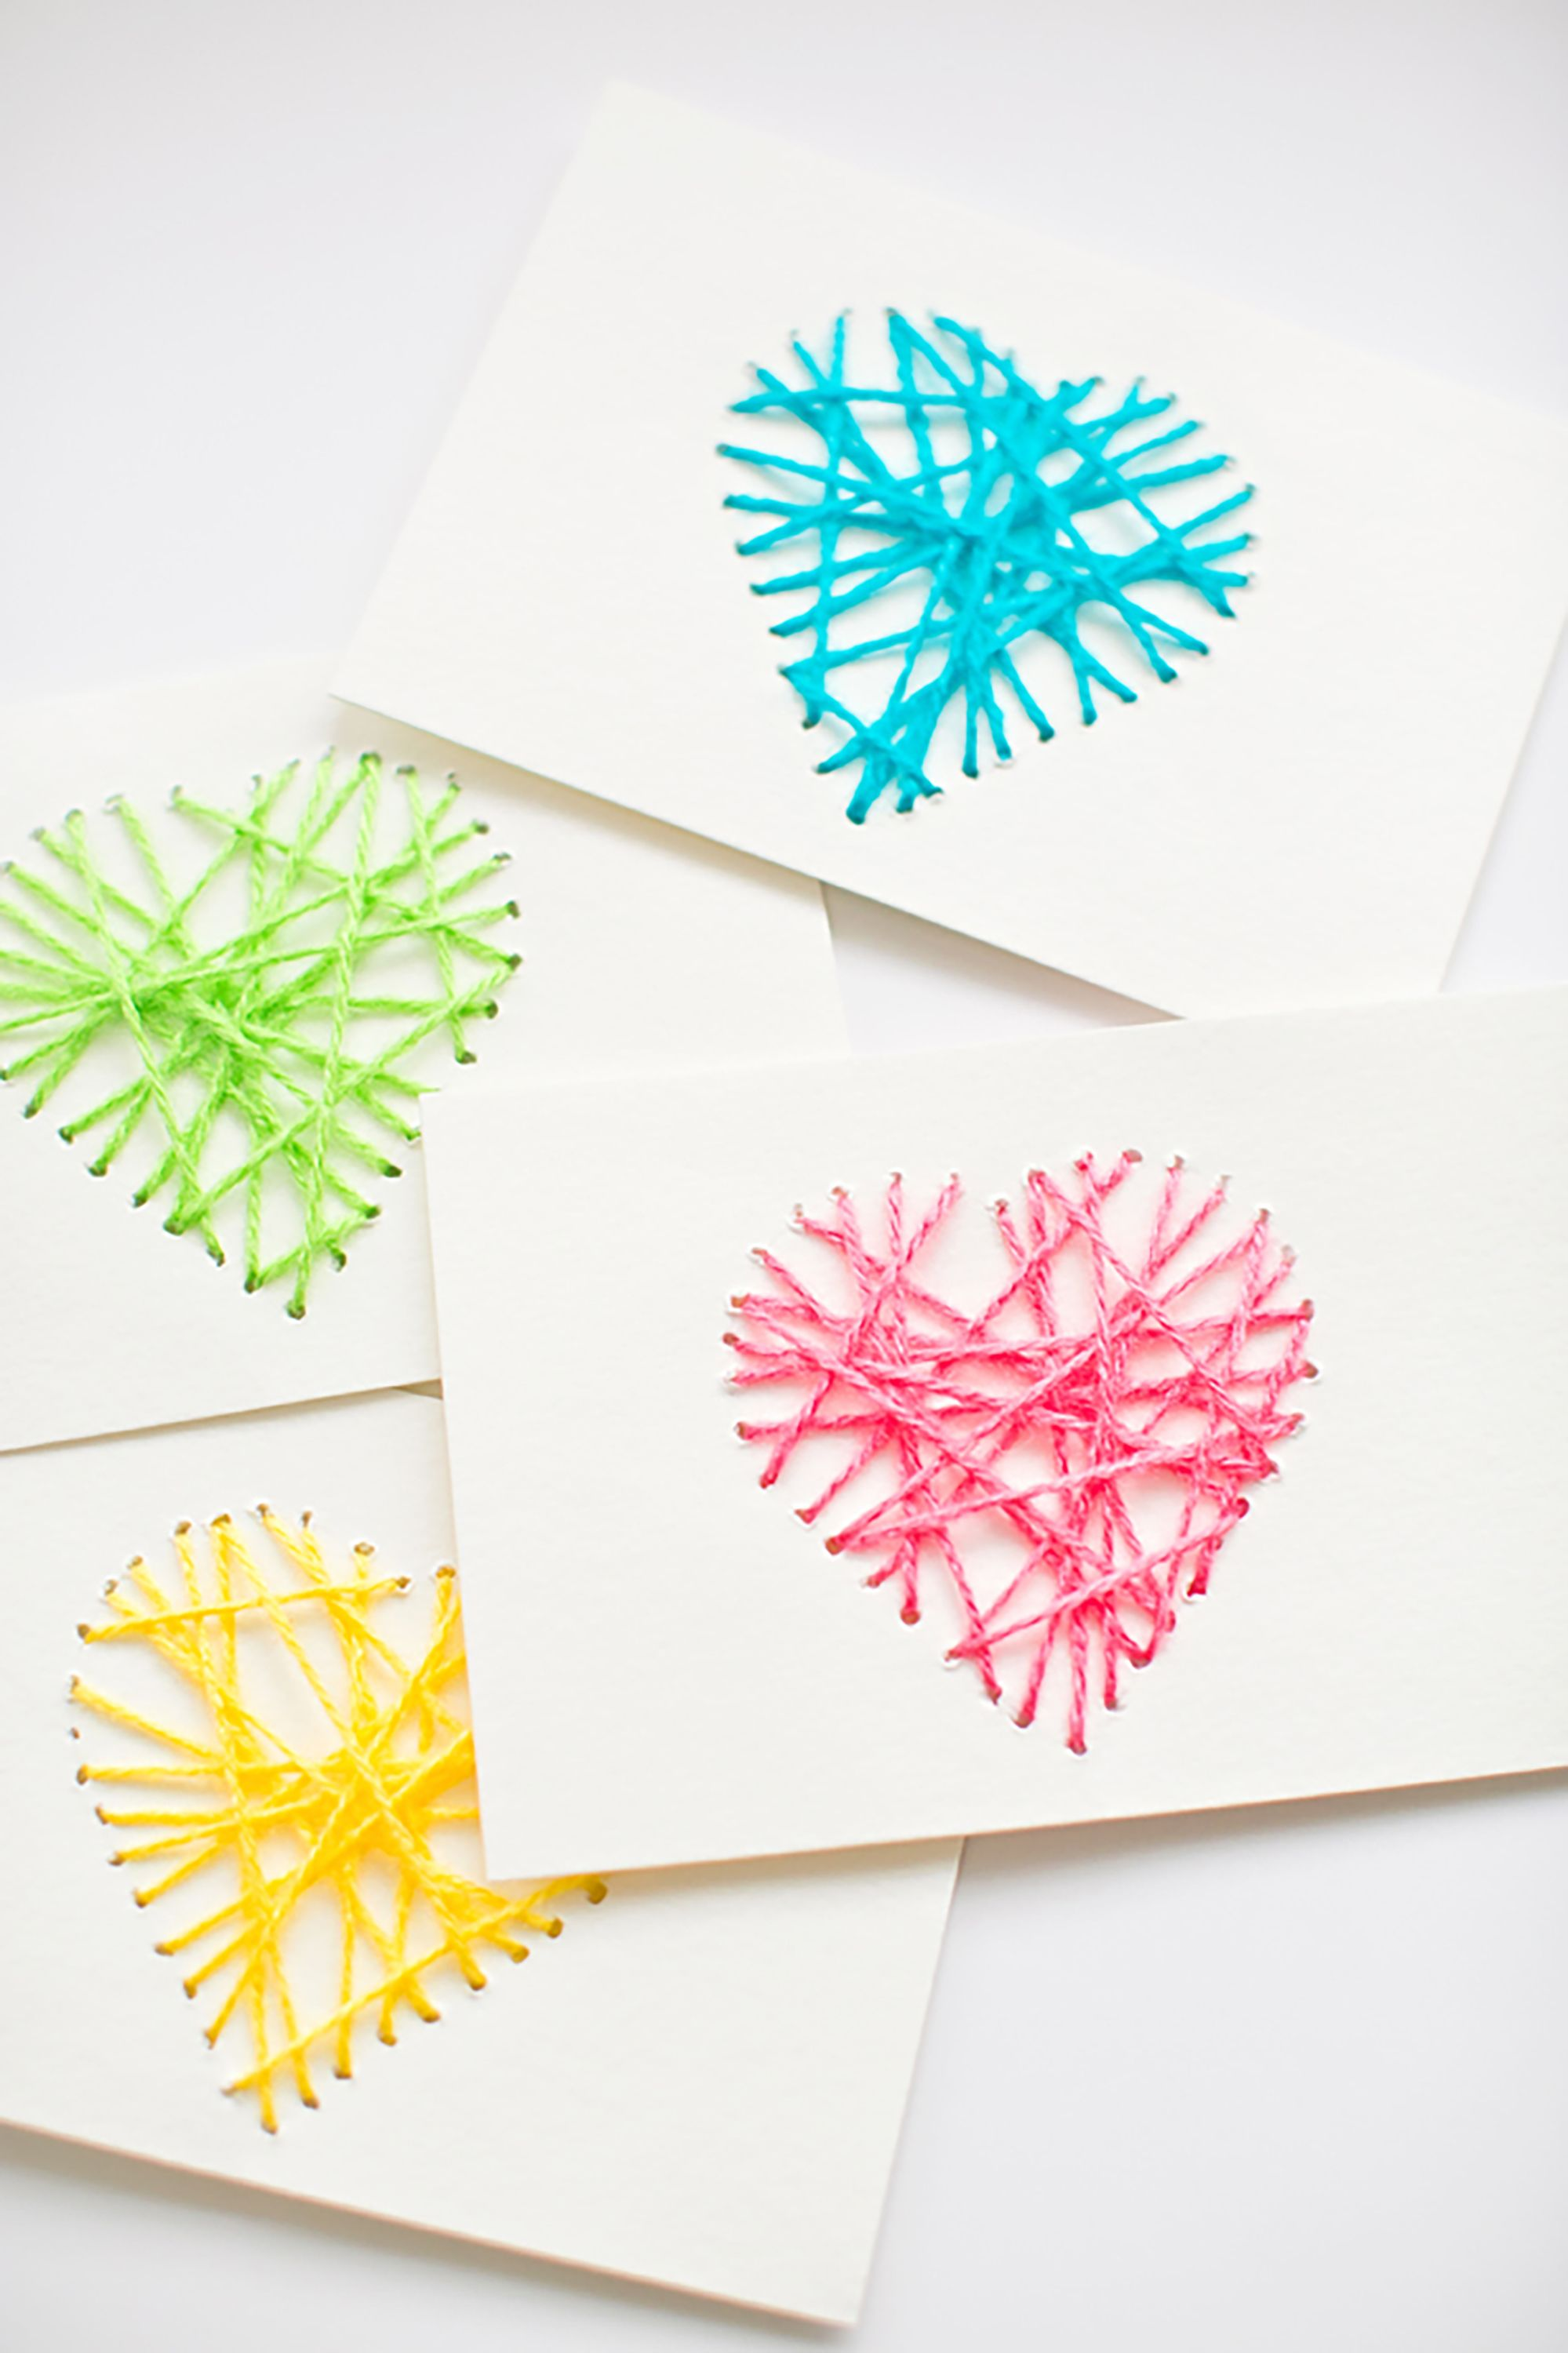 mothers day crafts  sc 1 st  Womanu0027s Day & 40 Motheru0027s Day Crafts - DIY Ideas for Motheru0027s Day Gifts Kids Can Make